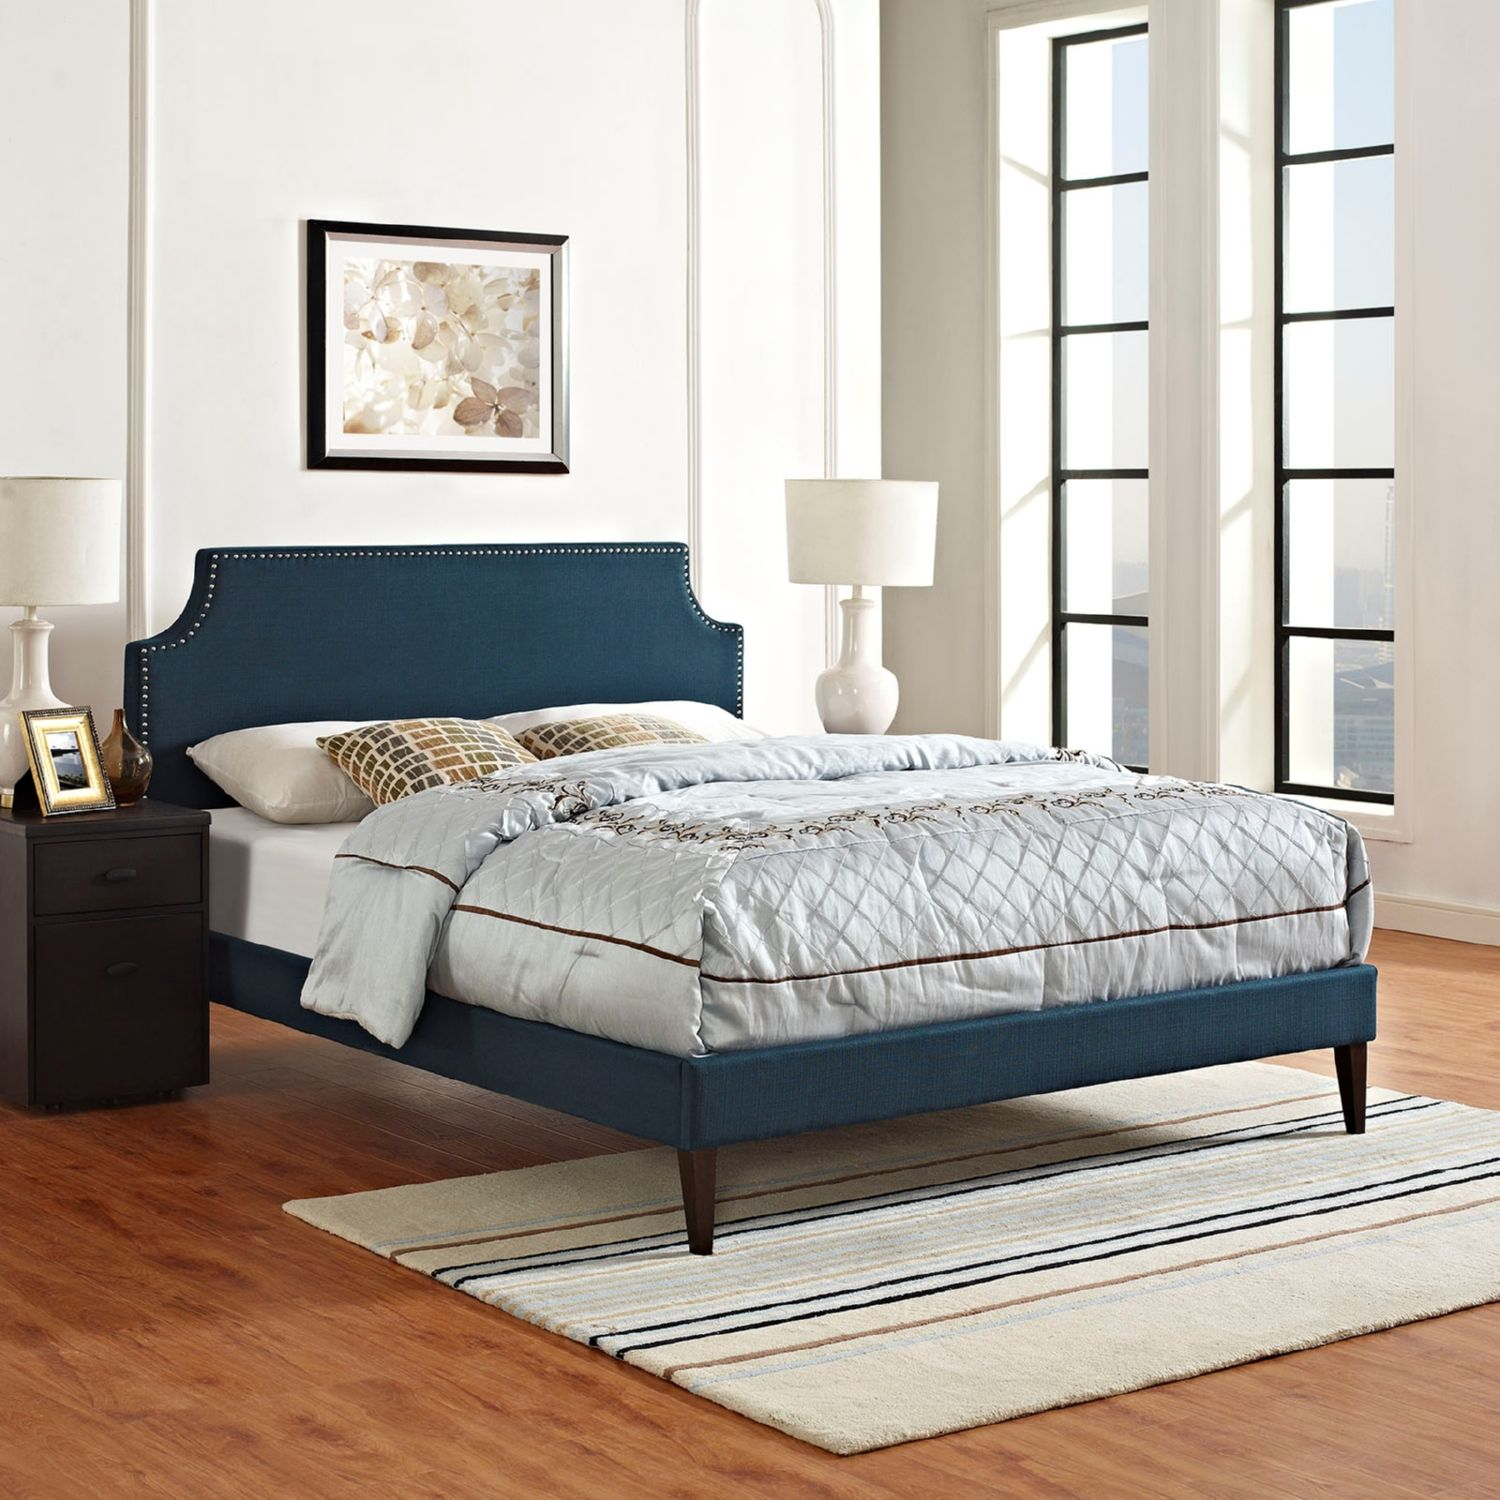 Modway Furniture 5681 Navy Blue Queen Fabric Platform Bed Frame